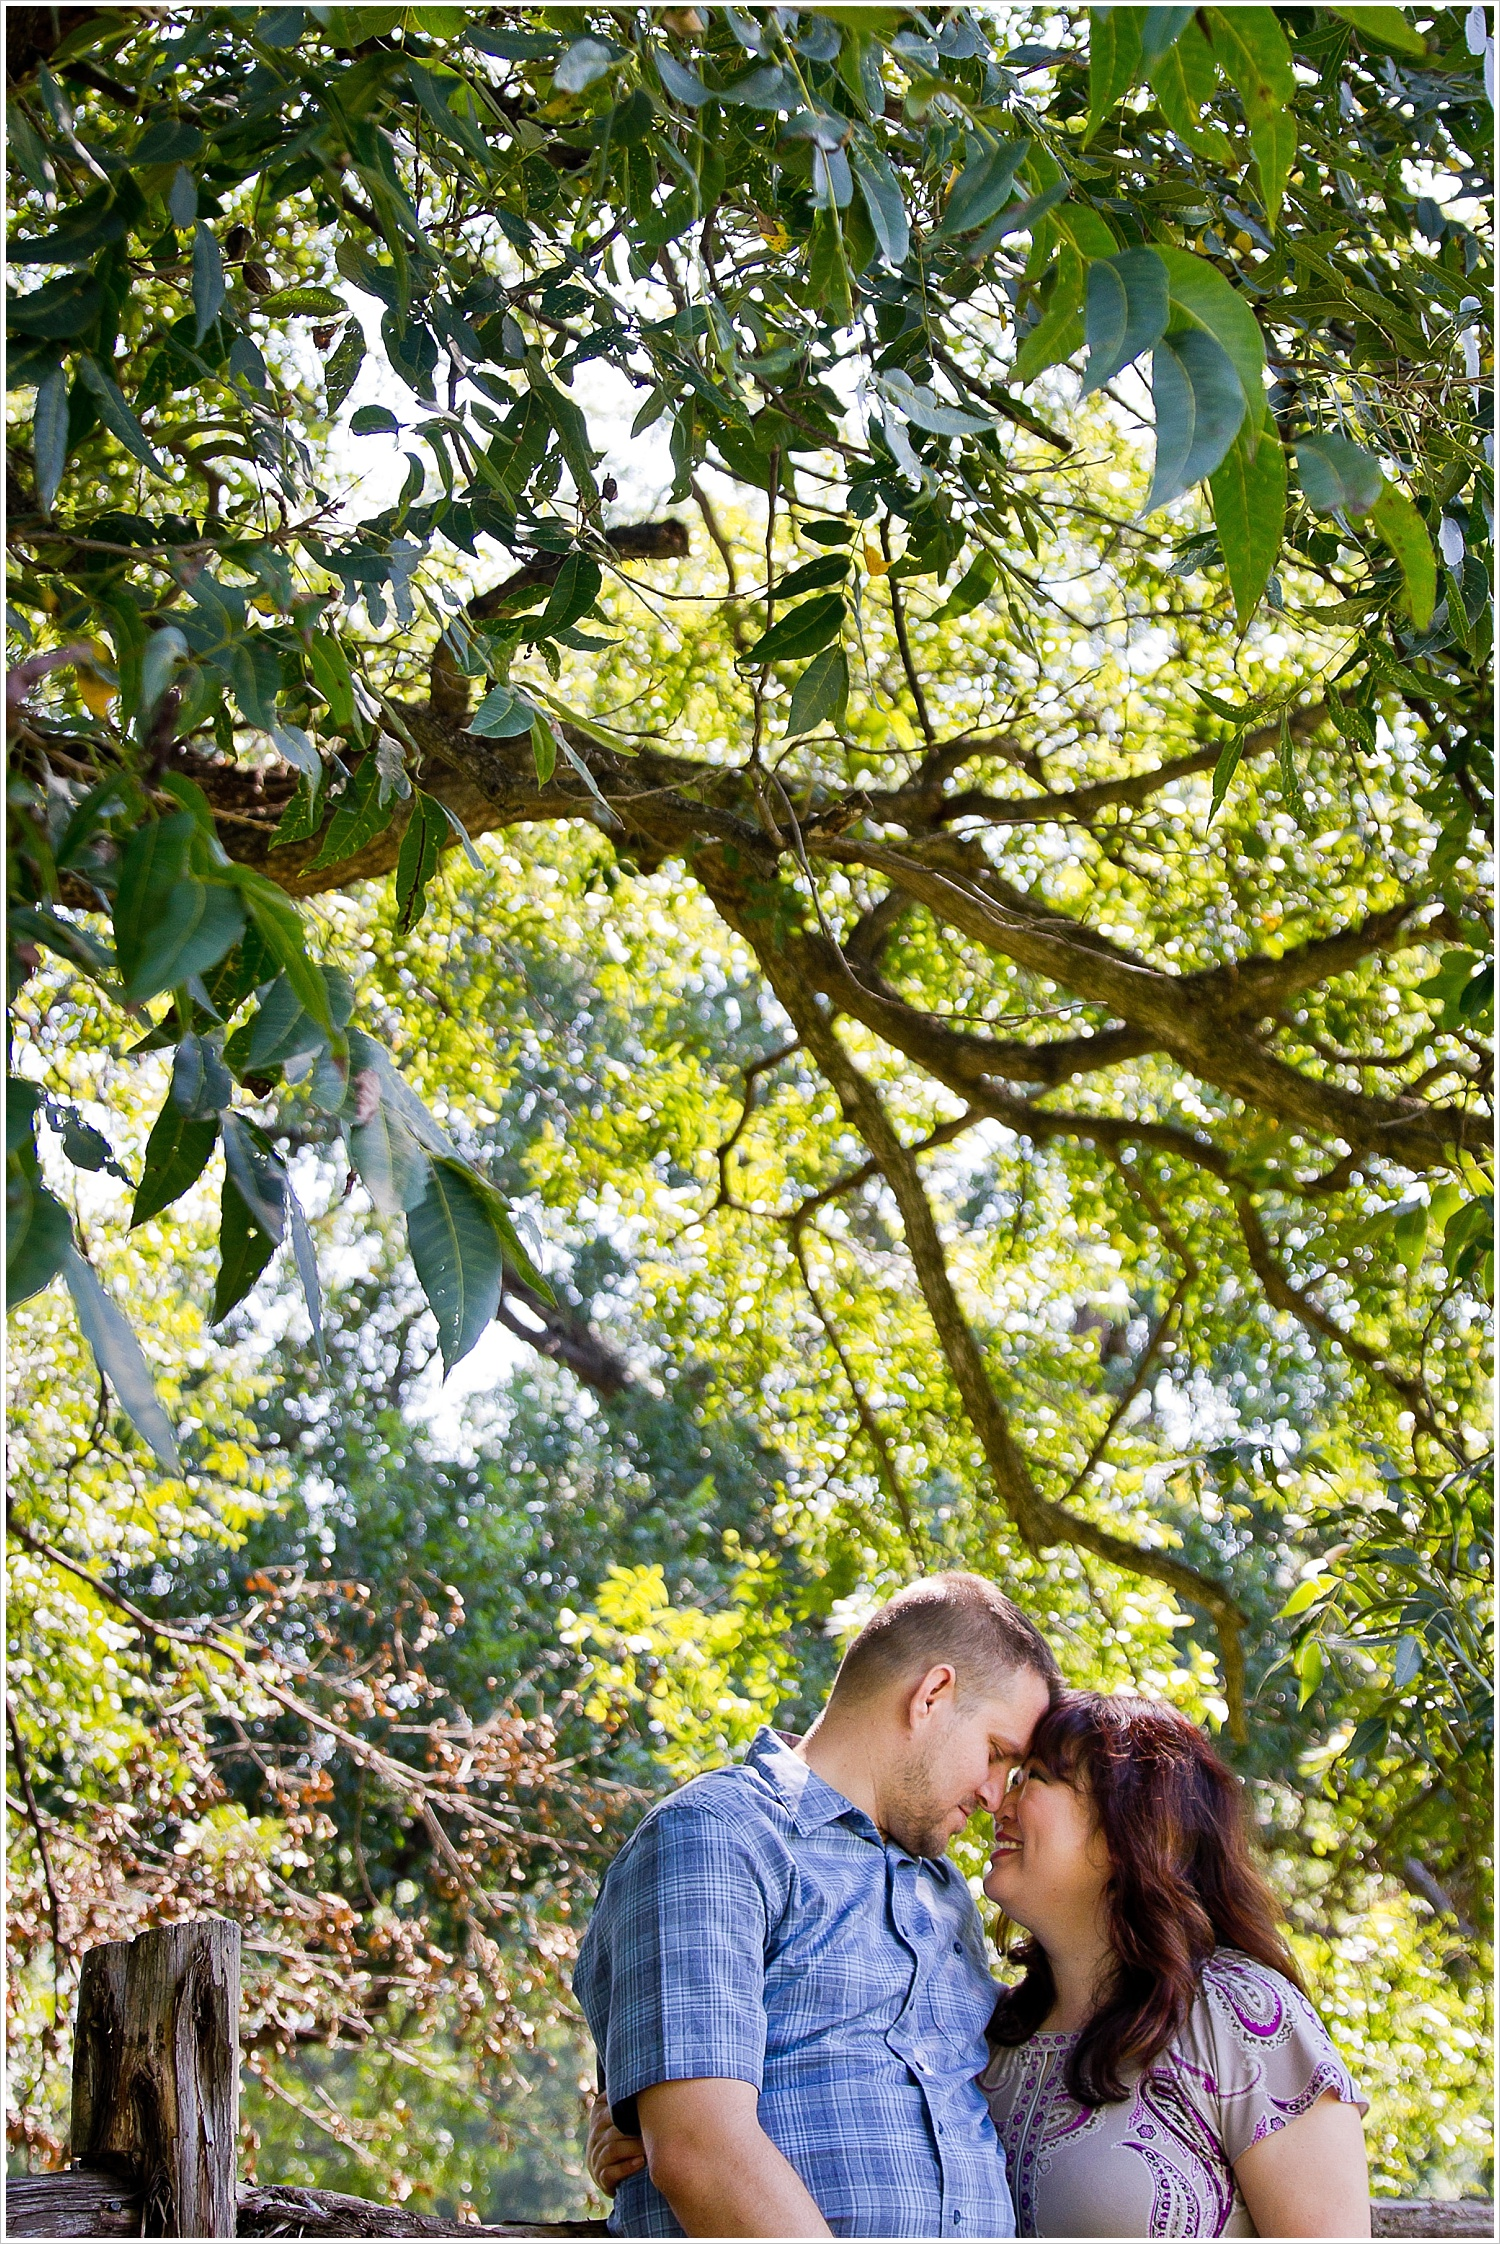 A couple embraces under a sunlit tree during their engagement portraits at Brazos Bluffs Ranch in Waco, Texas - Jason & Melaina Photography, www.jasonandmelaina.com